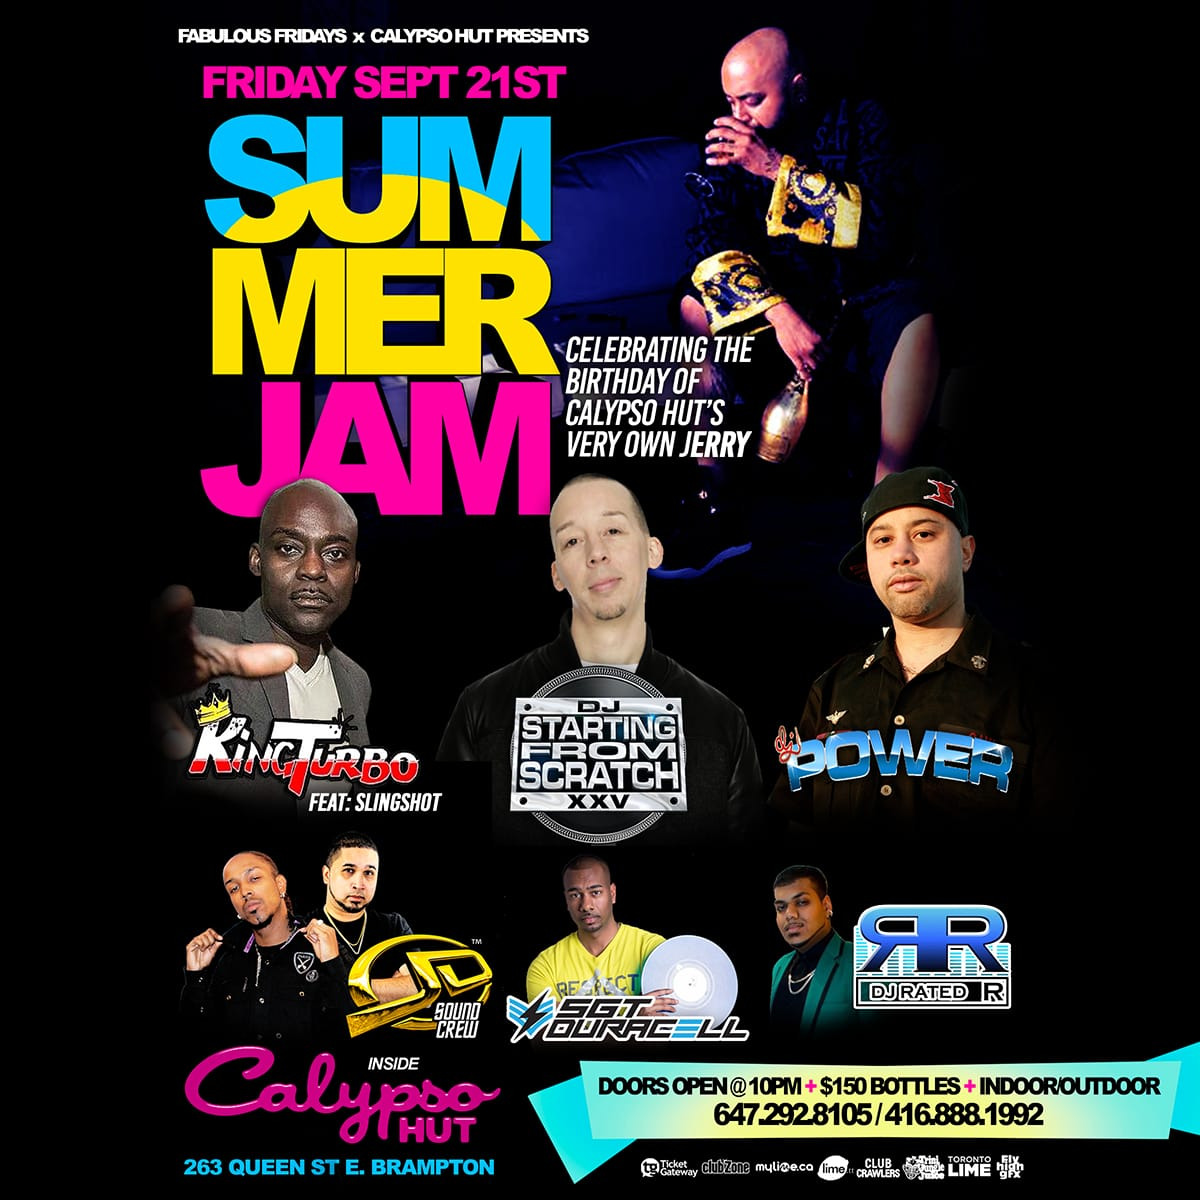 SUMMER JAM 2018 W/STARTING FROM SCRATCH |KINGTURBO |DJ POWER @CALYPSO HUT